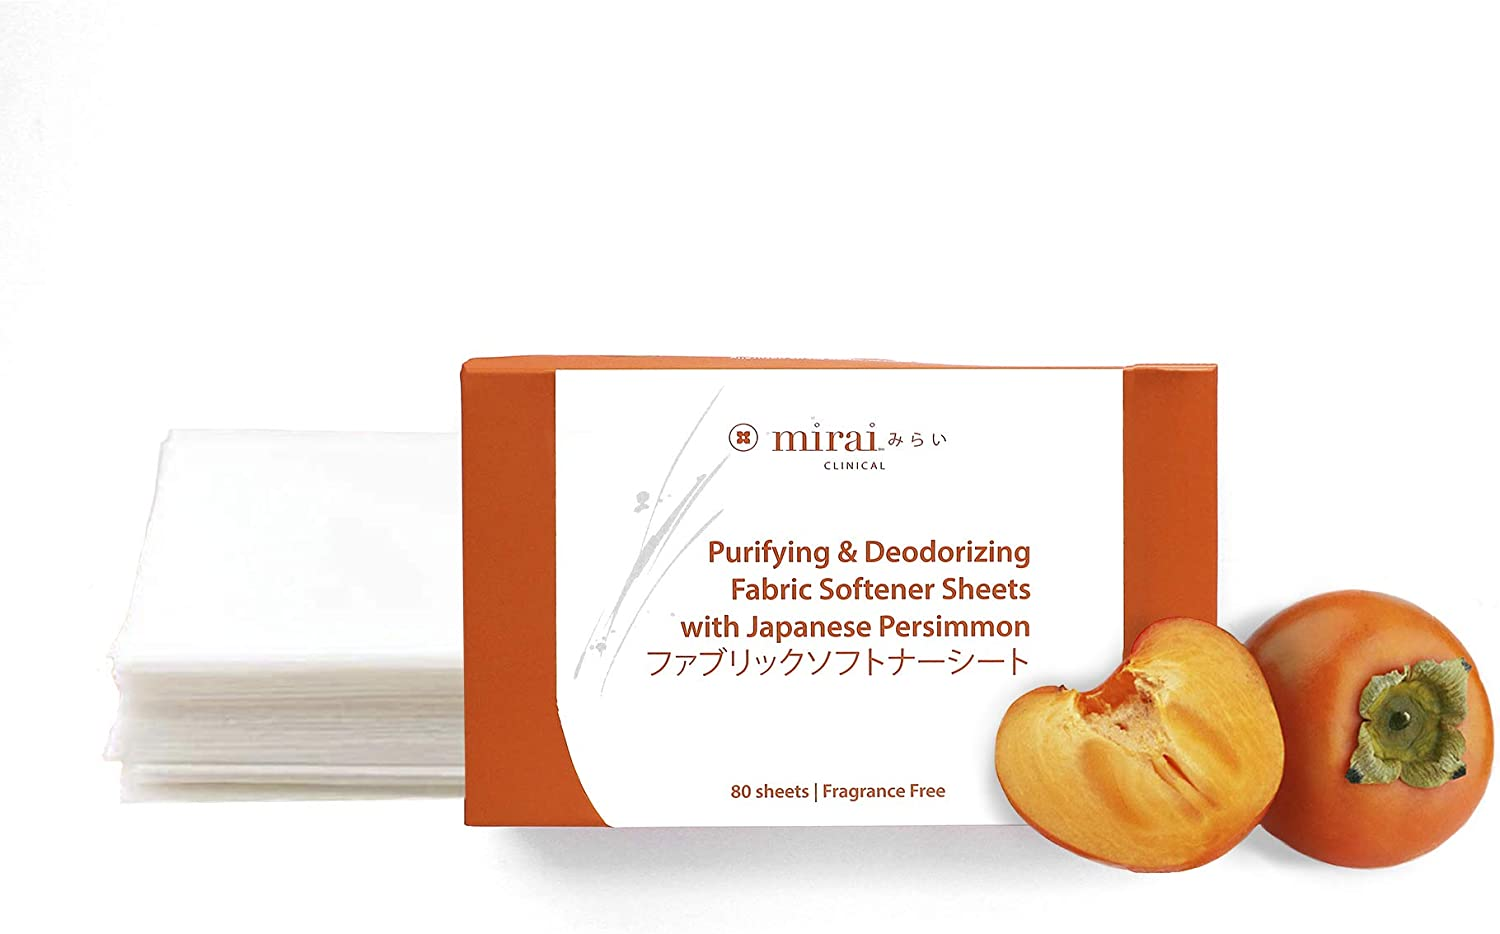 Purifying & Deodorizing Fabric Softener Dryer Sheet with Japanese Persimmon - 80 Sheets